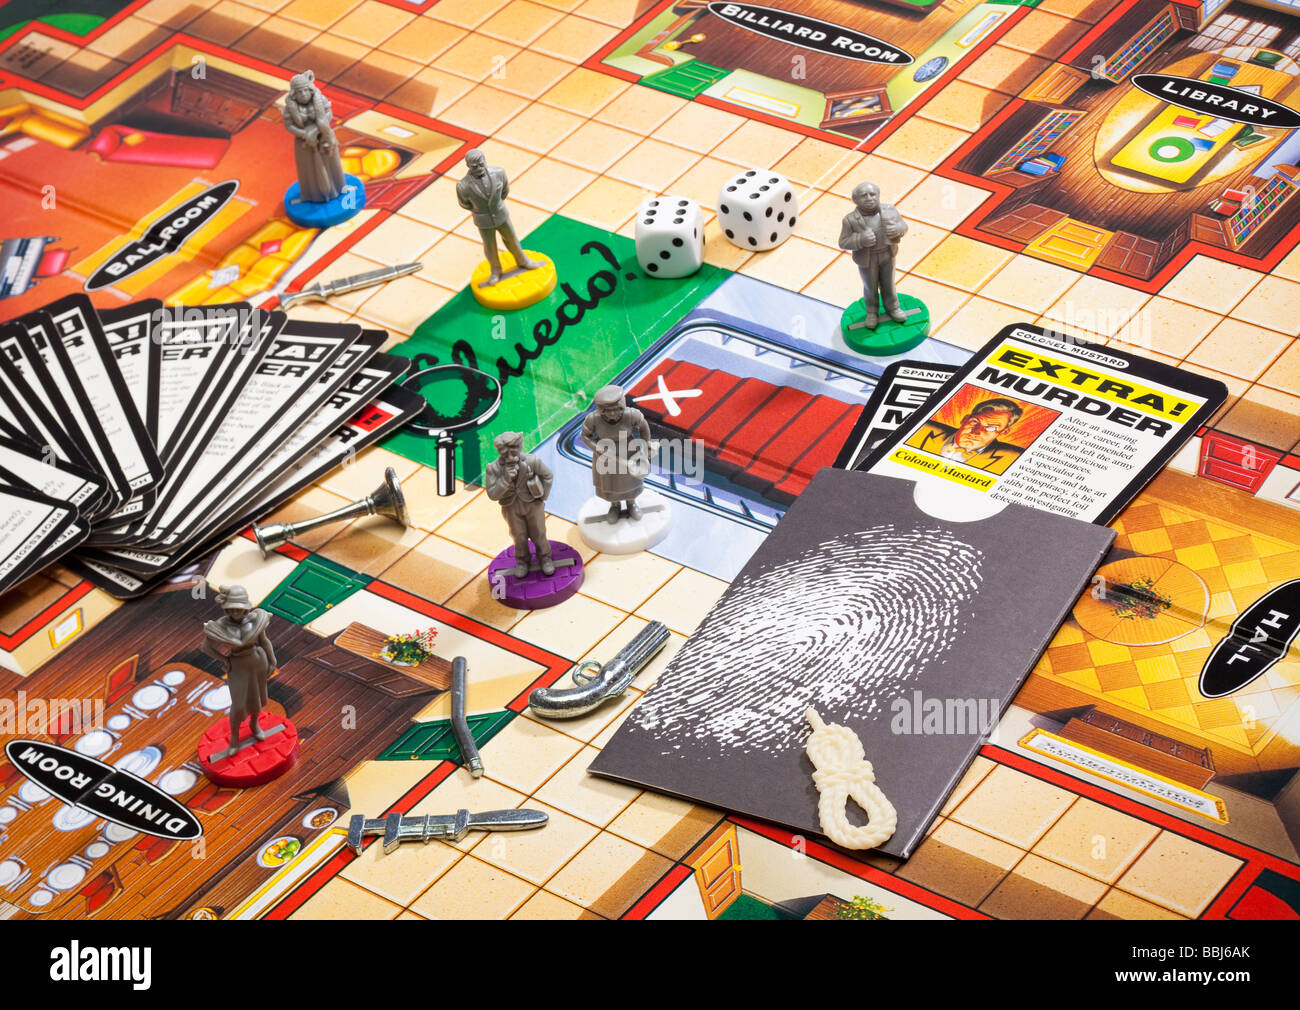 Board games - Cluedo board game with pieces - Stock Image